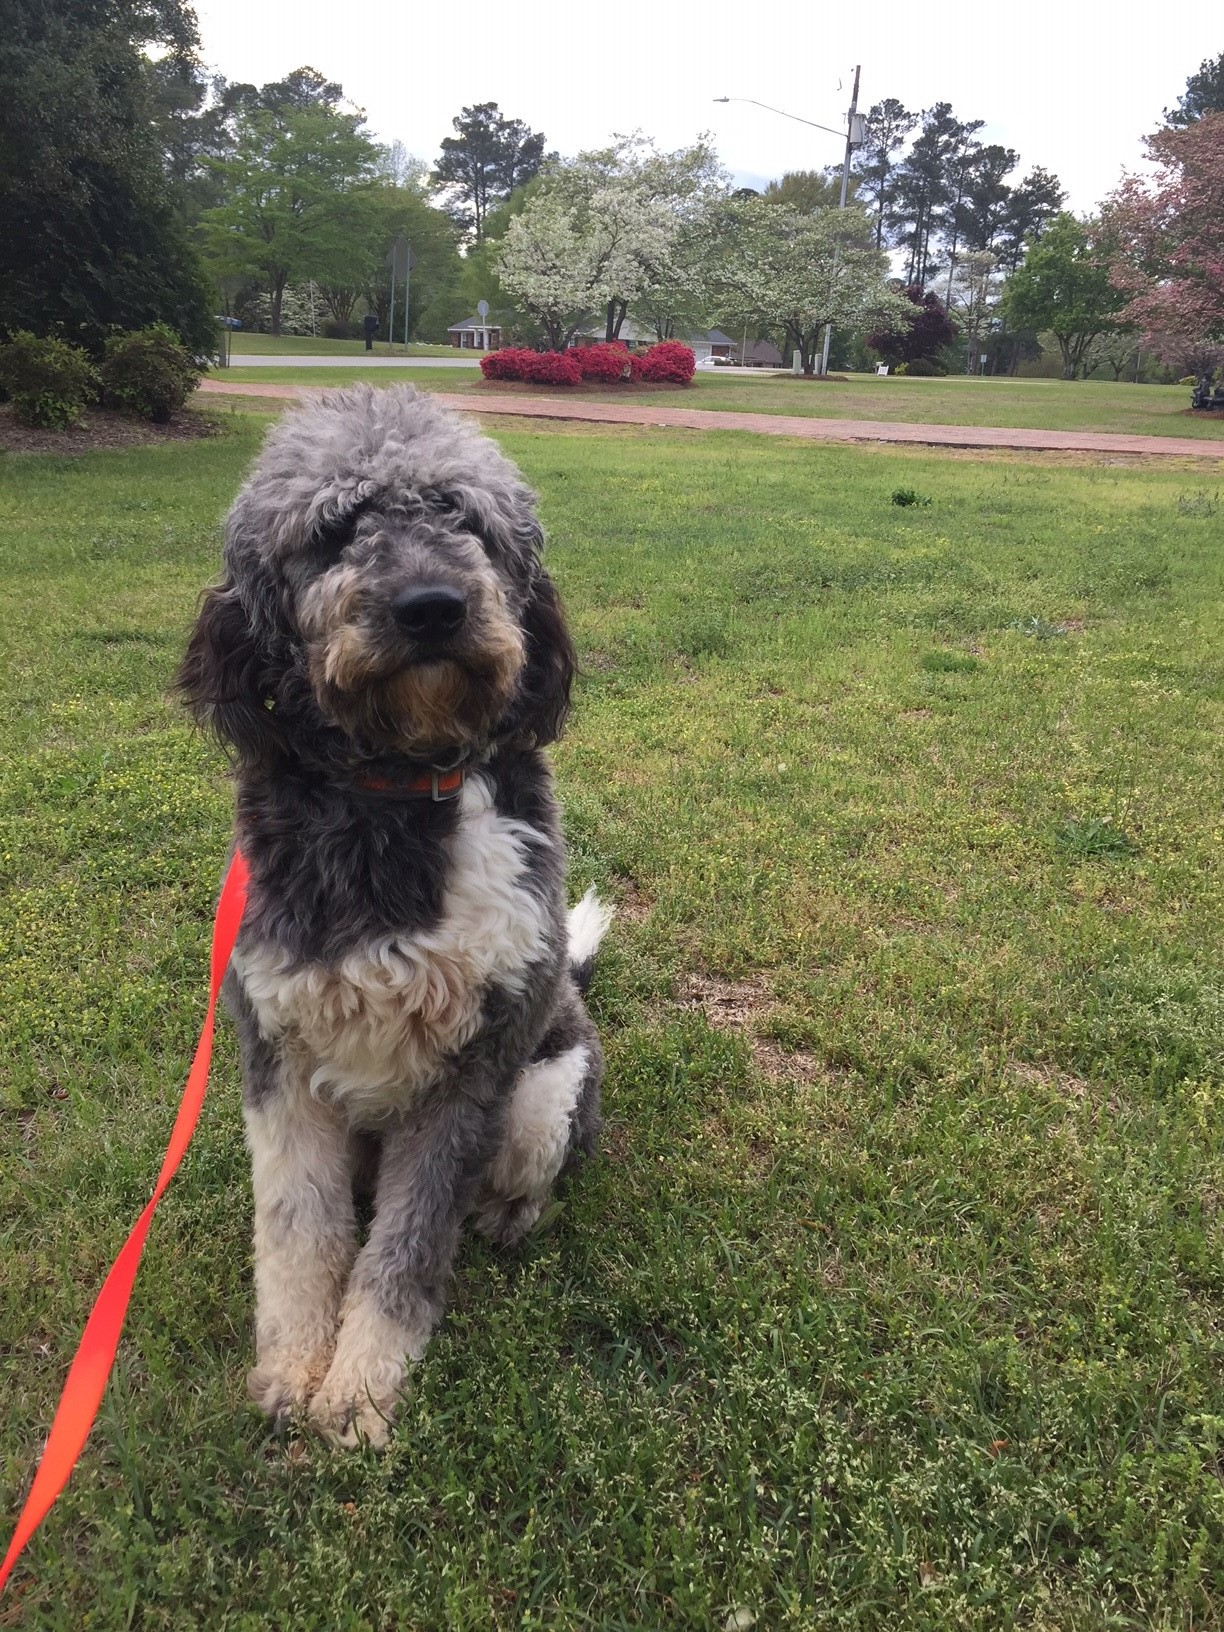 George, the one year old Newfiedoodle